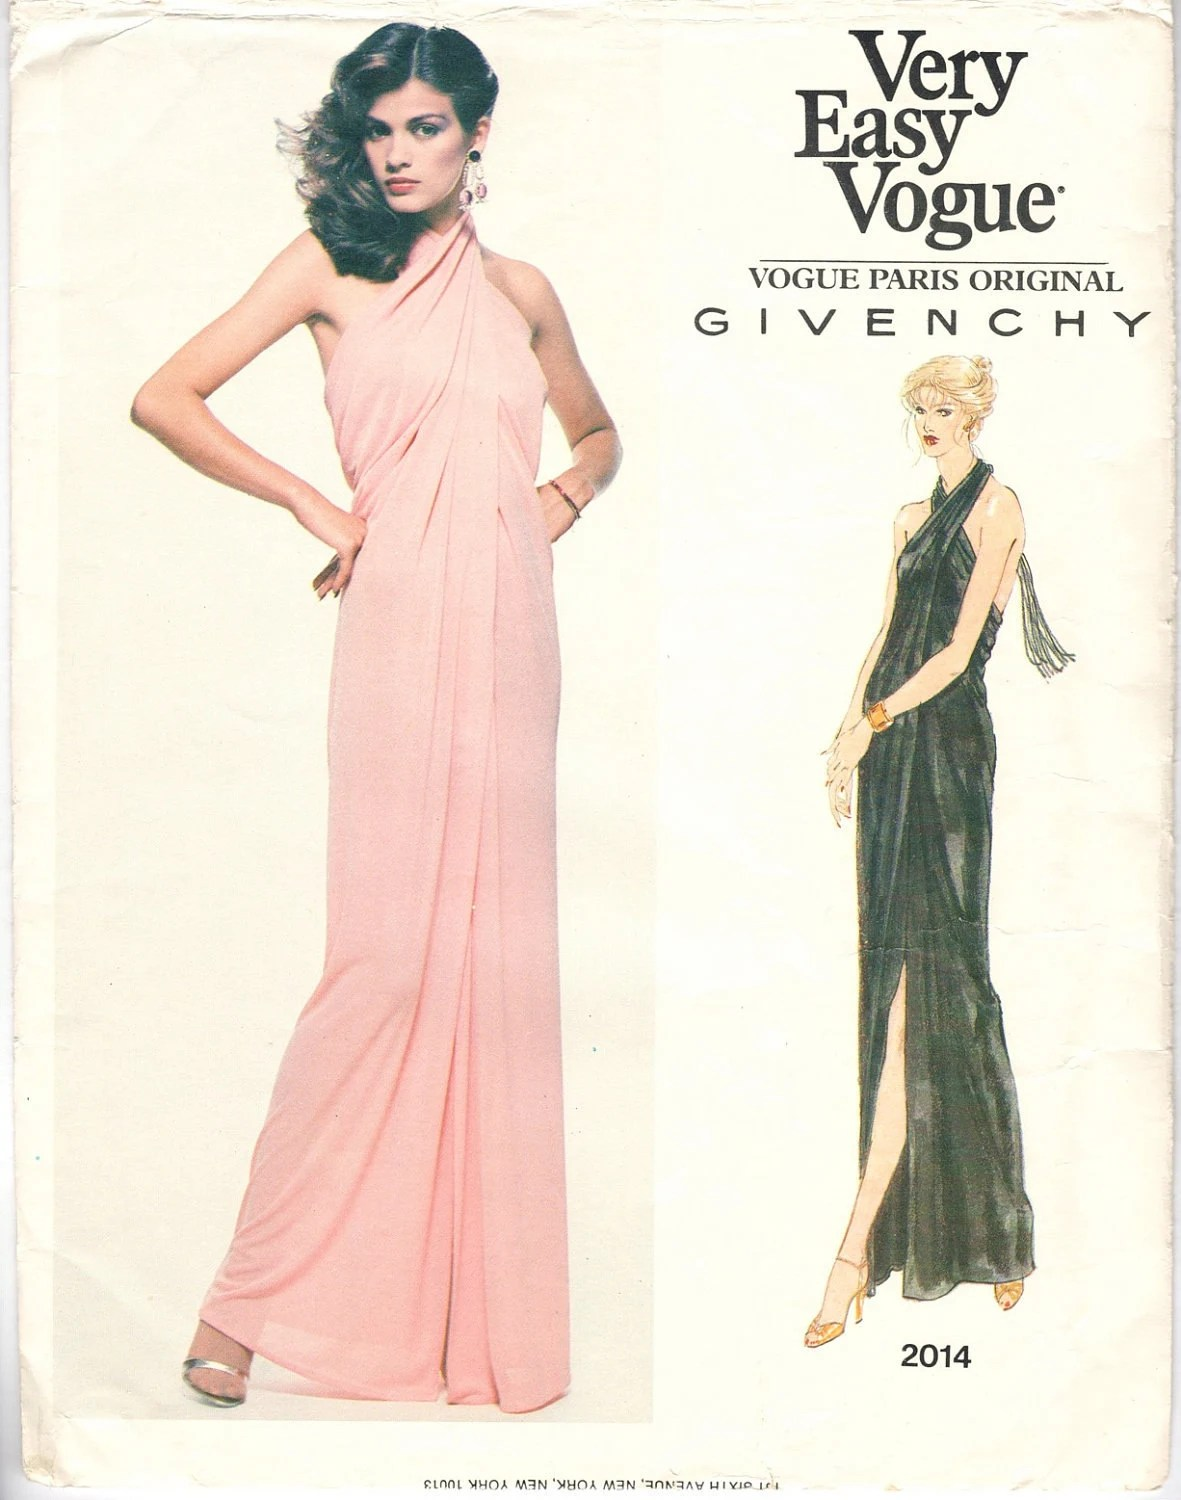 Late 1970s Givenchy pattern, Gia in a pink evening dress, Vogue 2014